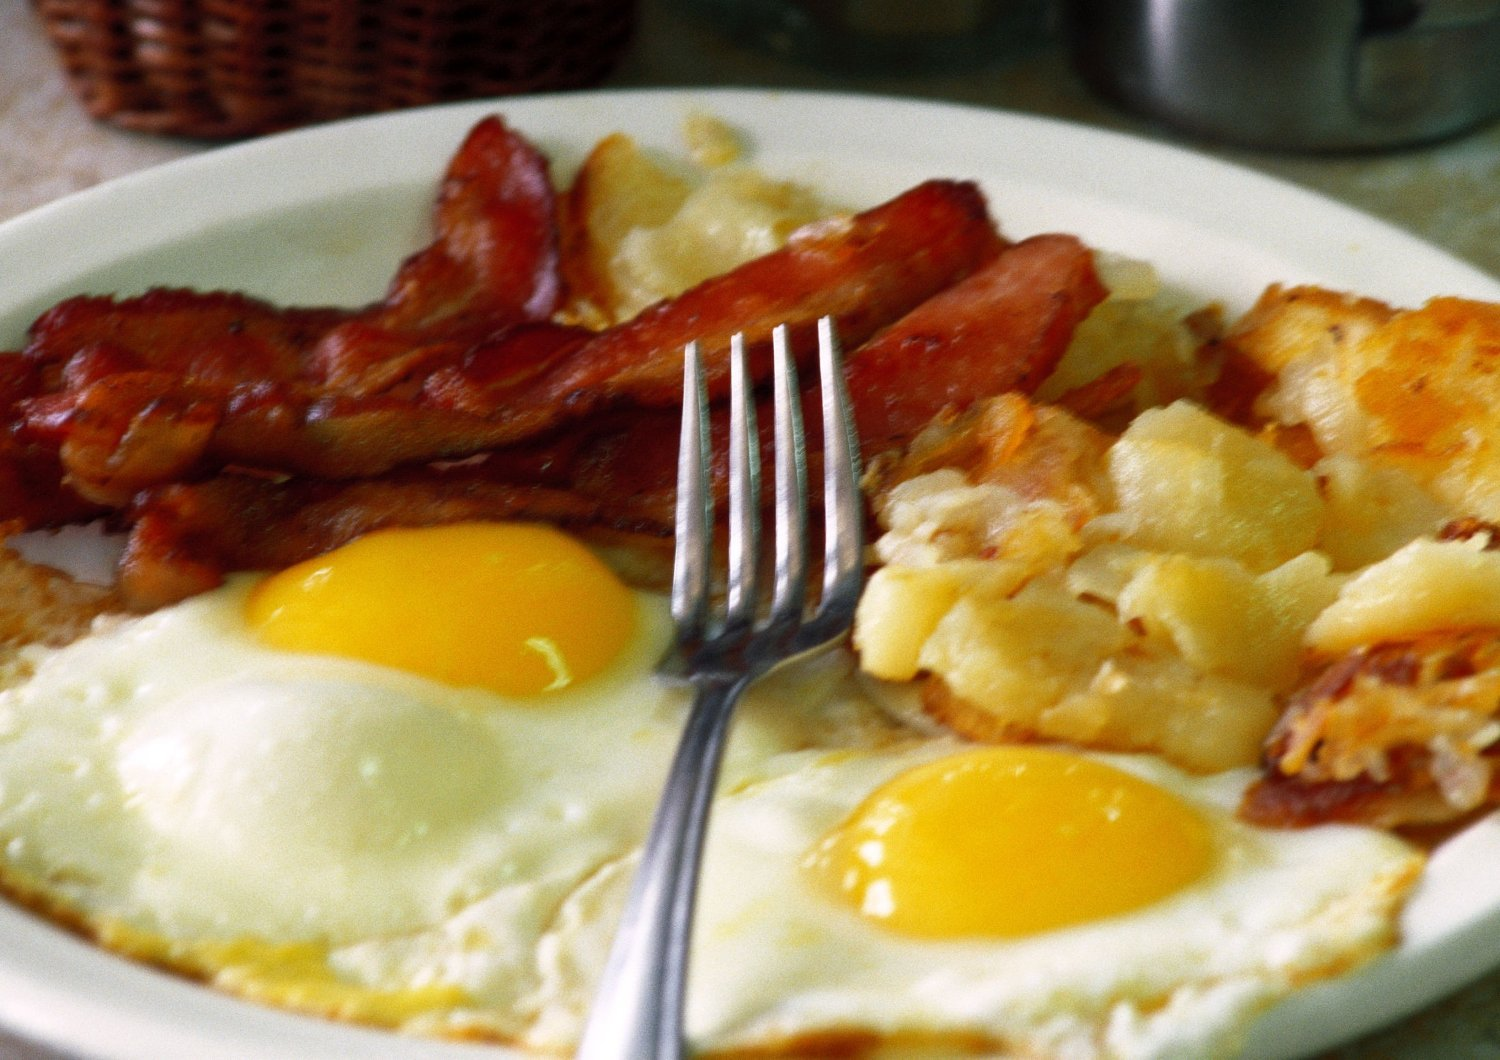 ©John Dowland/AltoPress/Maxppp ; Fried eggs, bacon and hash browns